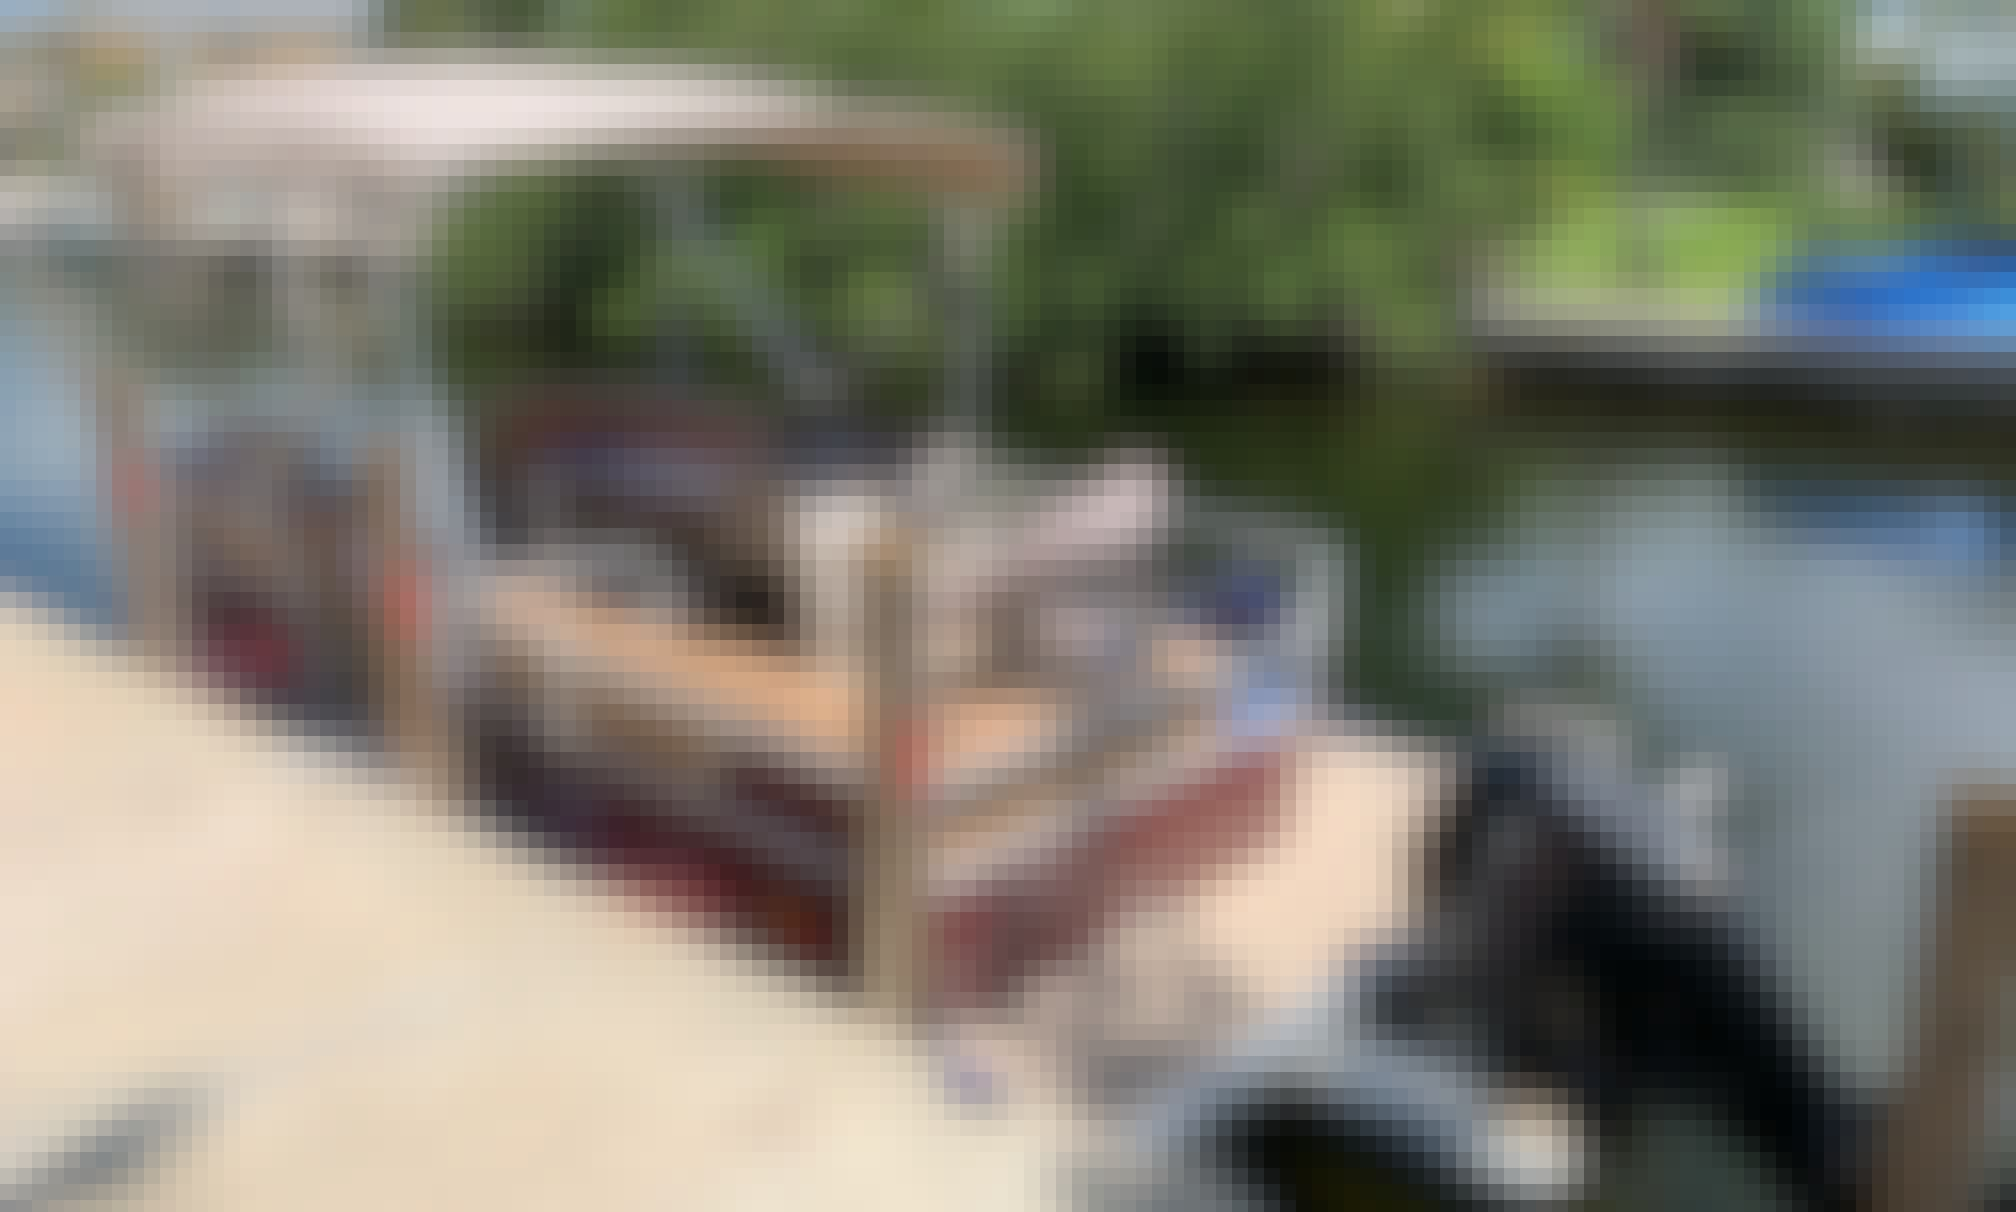 18' Party Barge Pontoon for Rent in Cudjoe Key, Florida. SAVE Big on multi day and week rental. Up to 50%